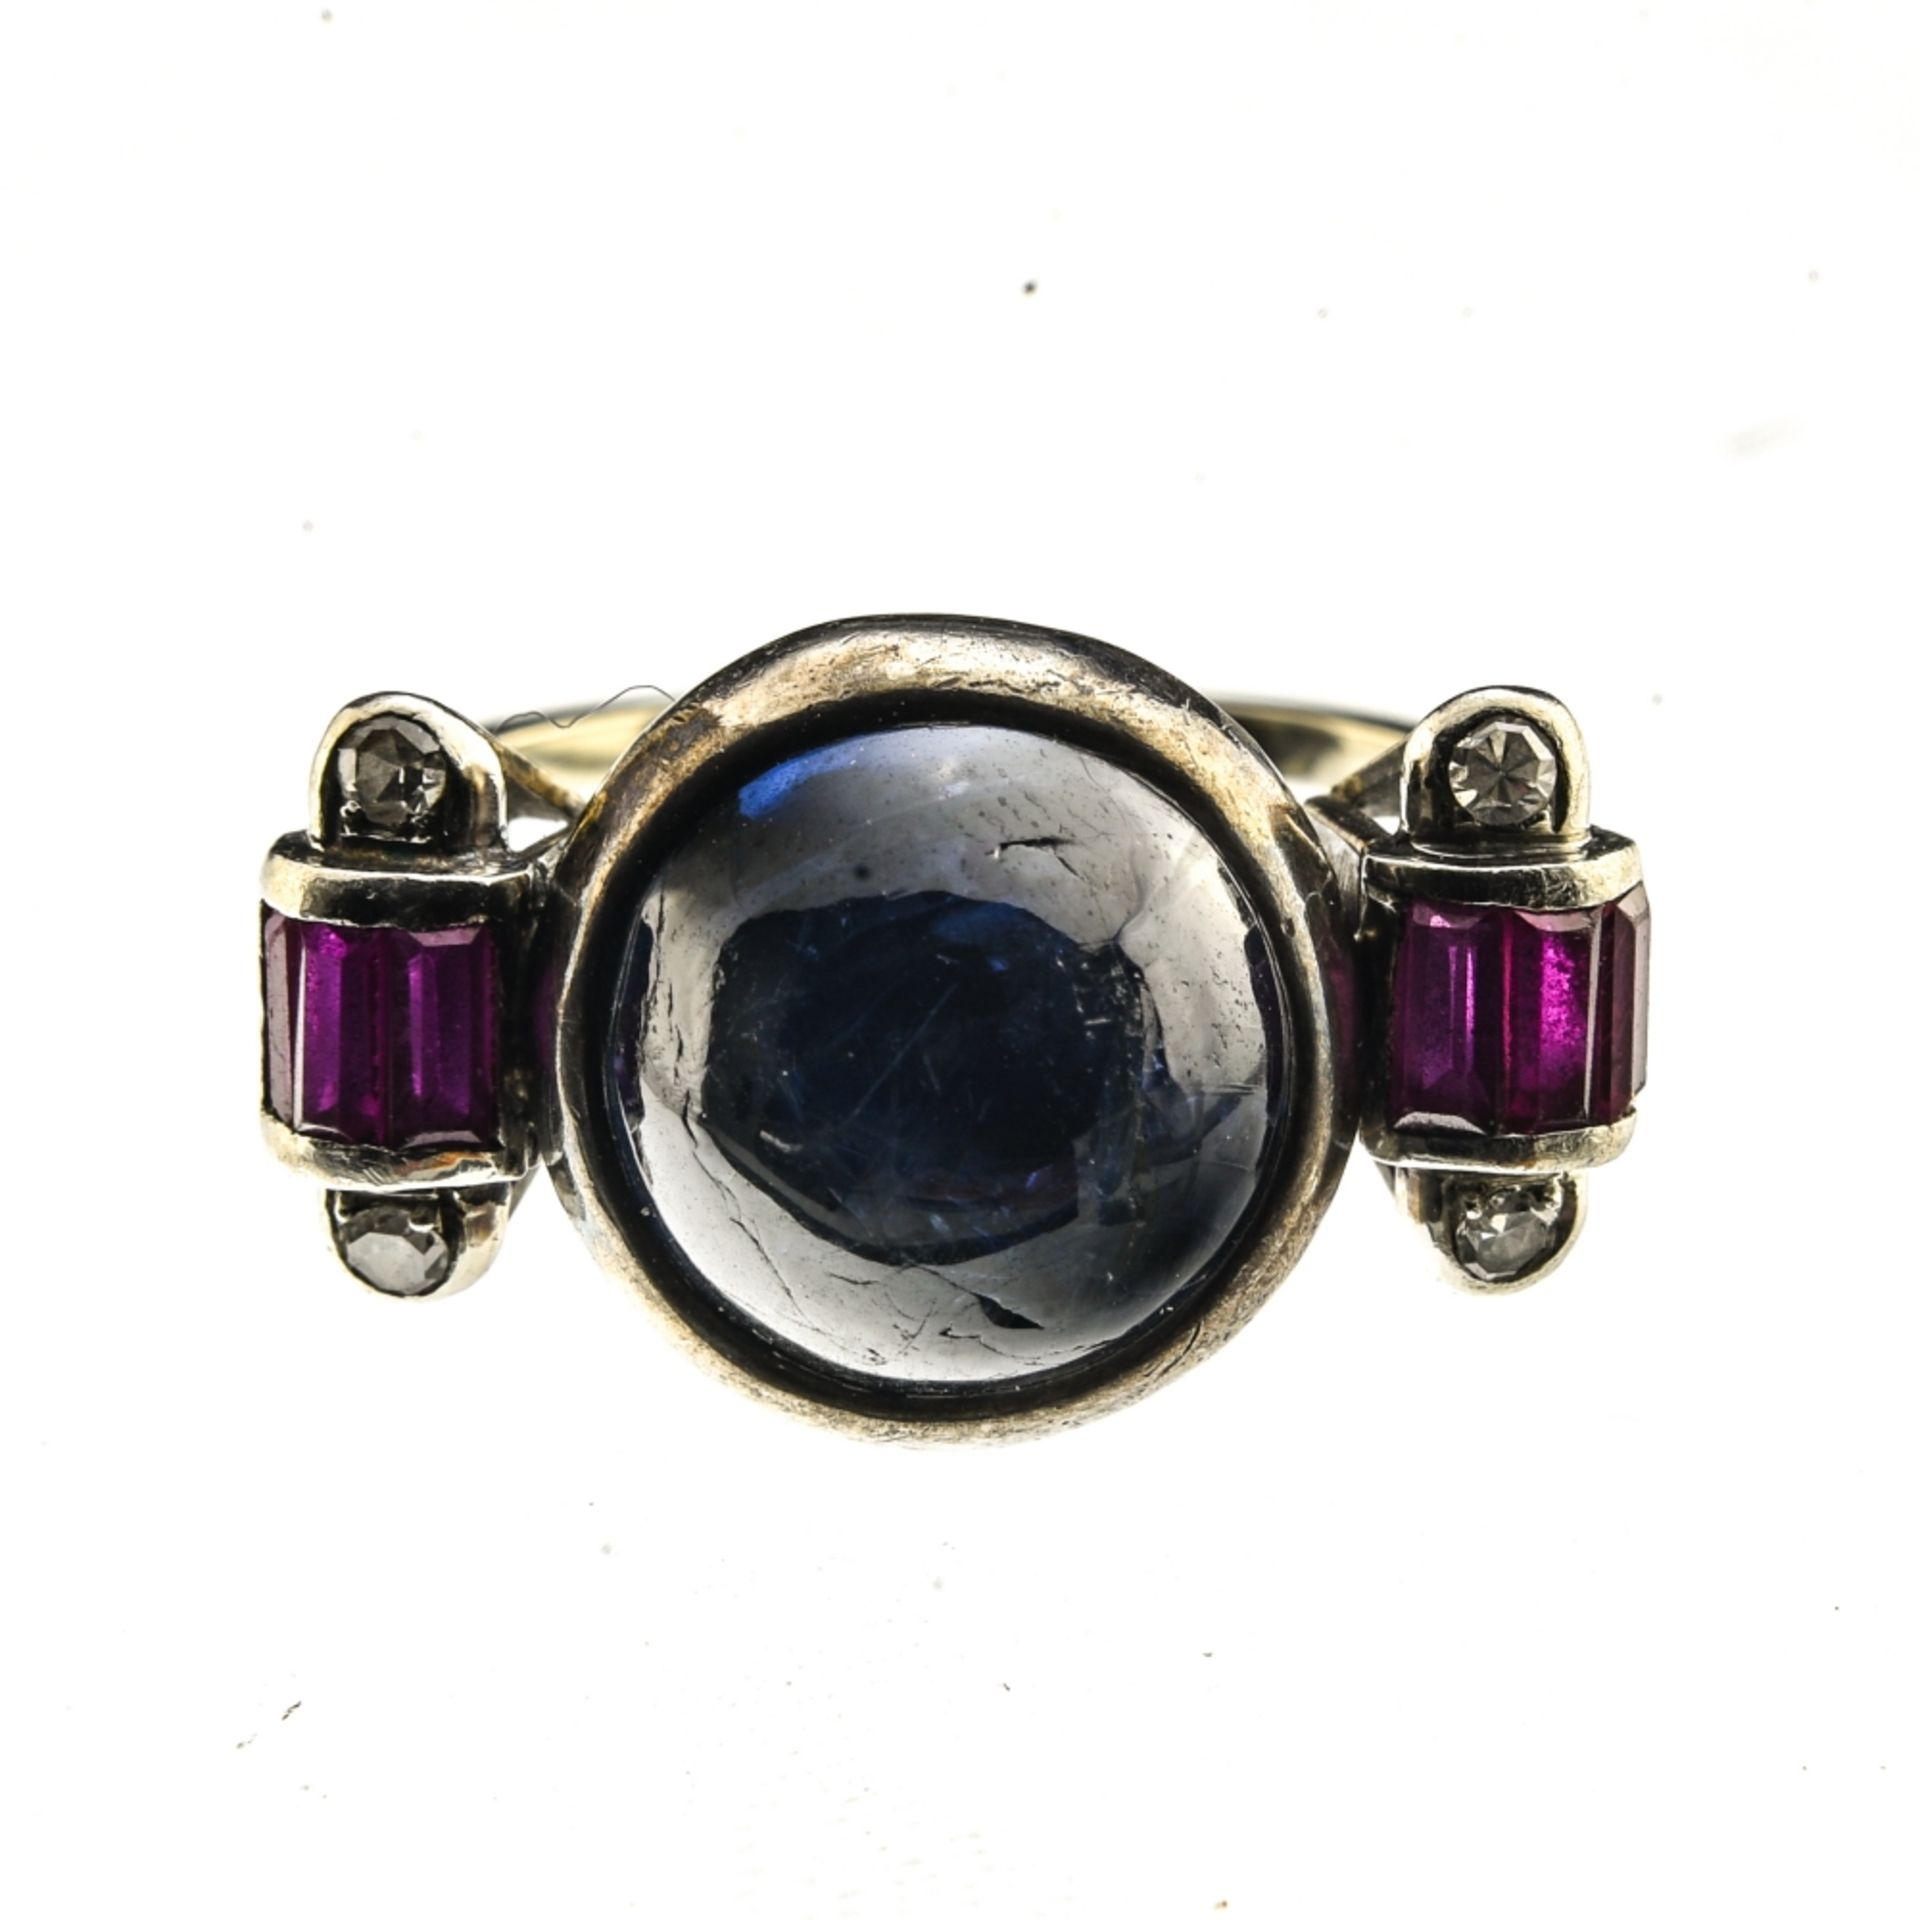 Art Deco ring 14 kt grey gold, set with a synthetic (Verneuil) sapphire cabochon, flanked by two